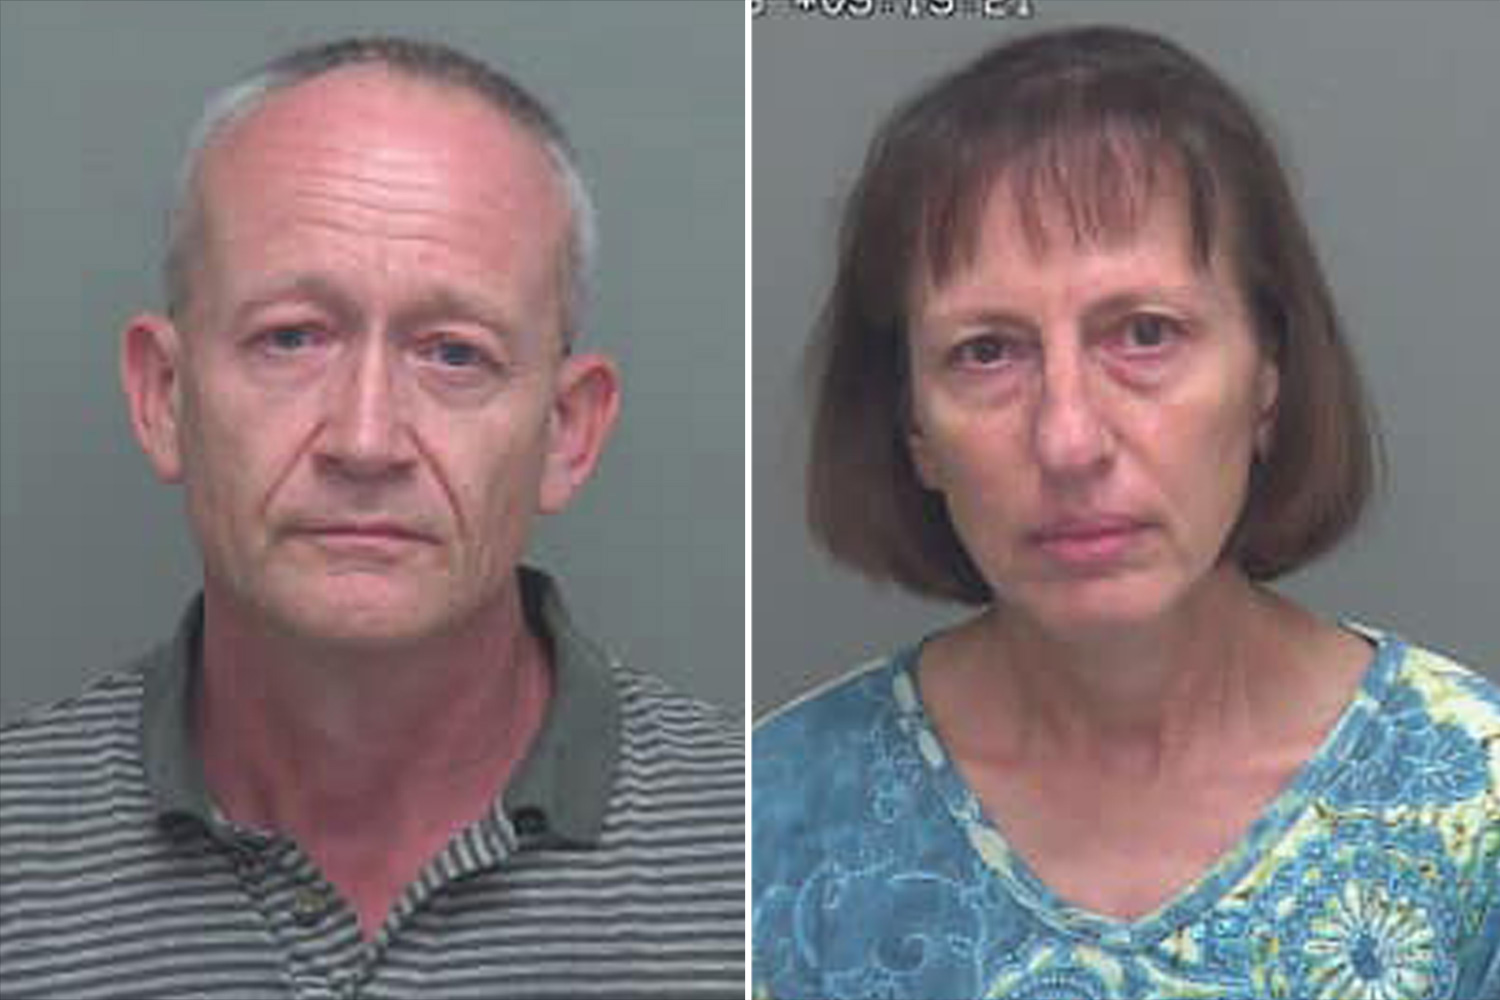 On July 12, 2019, Detectives of the Criminal Investigations Division (CID) at the Wakulla County Sheriff's Office (SO) arrested Mirko Ceska, 58 years of age, and Regina Ceska, 55 years of age, for various physical and sexual abuse charges; executed search warrants at their residence located at 251 Lonnie Raker Lane in Crawfordville; and served multiple Domestic Violence Injunctions. https://www.facebook.com/wakullasheriffsoffice/posts/2465591176794452?__tn__=K-R Credit: Wakulla County Sheriff's Office